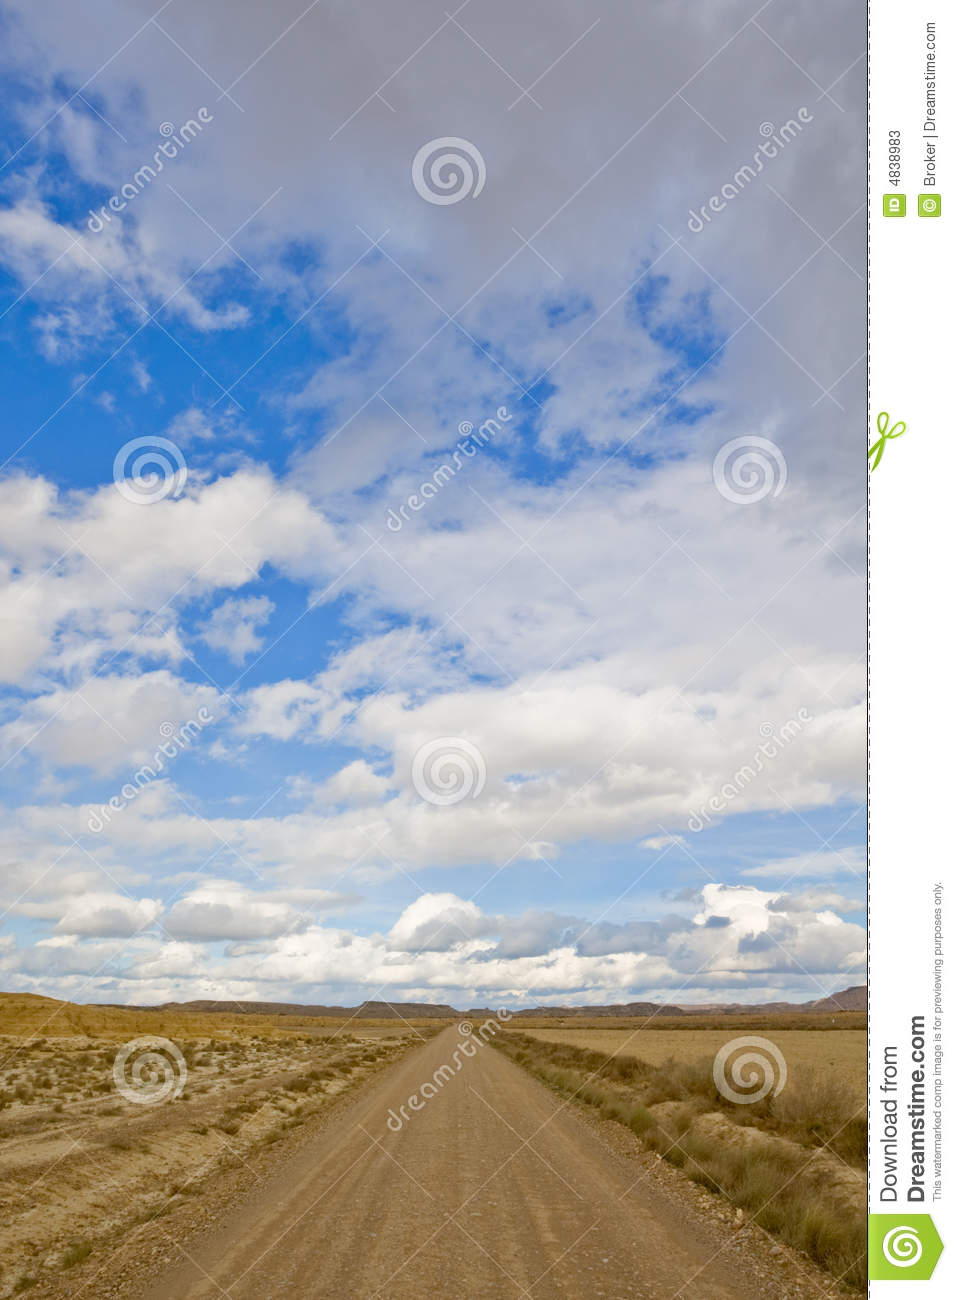 Lonely road under cloudy sky